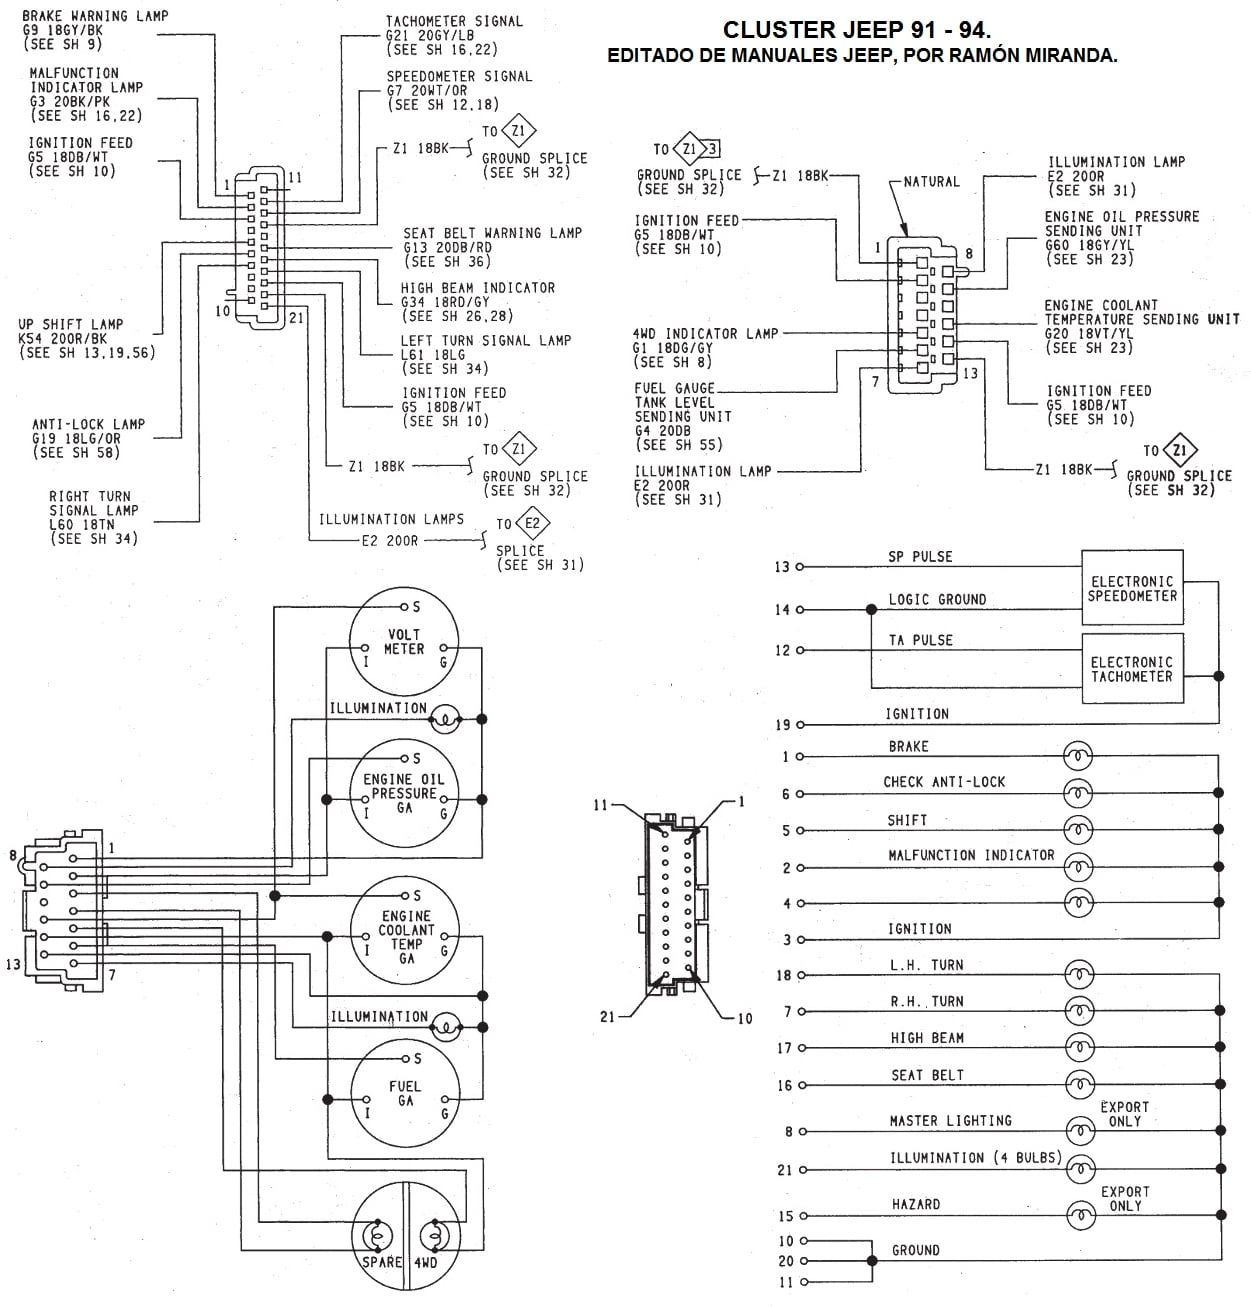 cbc6a6f5736e669618c9c64dcaeae9ae Yj Jeep E Wiring Diagrams on volkswagen cabriolet wiring diagram, chrysler crossfire wiring diagram, volkswagen golf wiring diagram, jeep grand cherokee fuse box diagram, suzuki xl7 wiring diagram, 95 jeep wiring diagram, acura tl wiring diagram, jeep wrangler, 1991 jeep cherokee fuse box diagram, cadillac xlr wiring diagram, jeep zj wiring diagram, chevrolet impala wiring diagram, 91 silverado wiring diagram, jeep jk wiring harness, 2007 jeep liberty wiring diagram, jeep starter wiring, ford bronco wiring diagram, jeep to chevy wiring harness, jeep cj7 wiring-diagram, ford thunderbird wiring diagram,